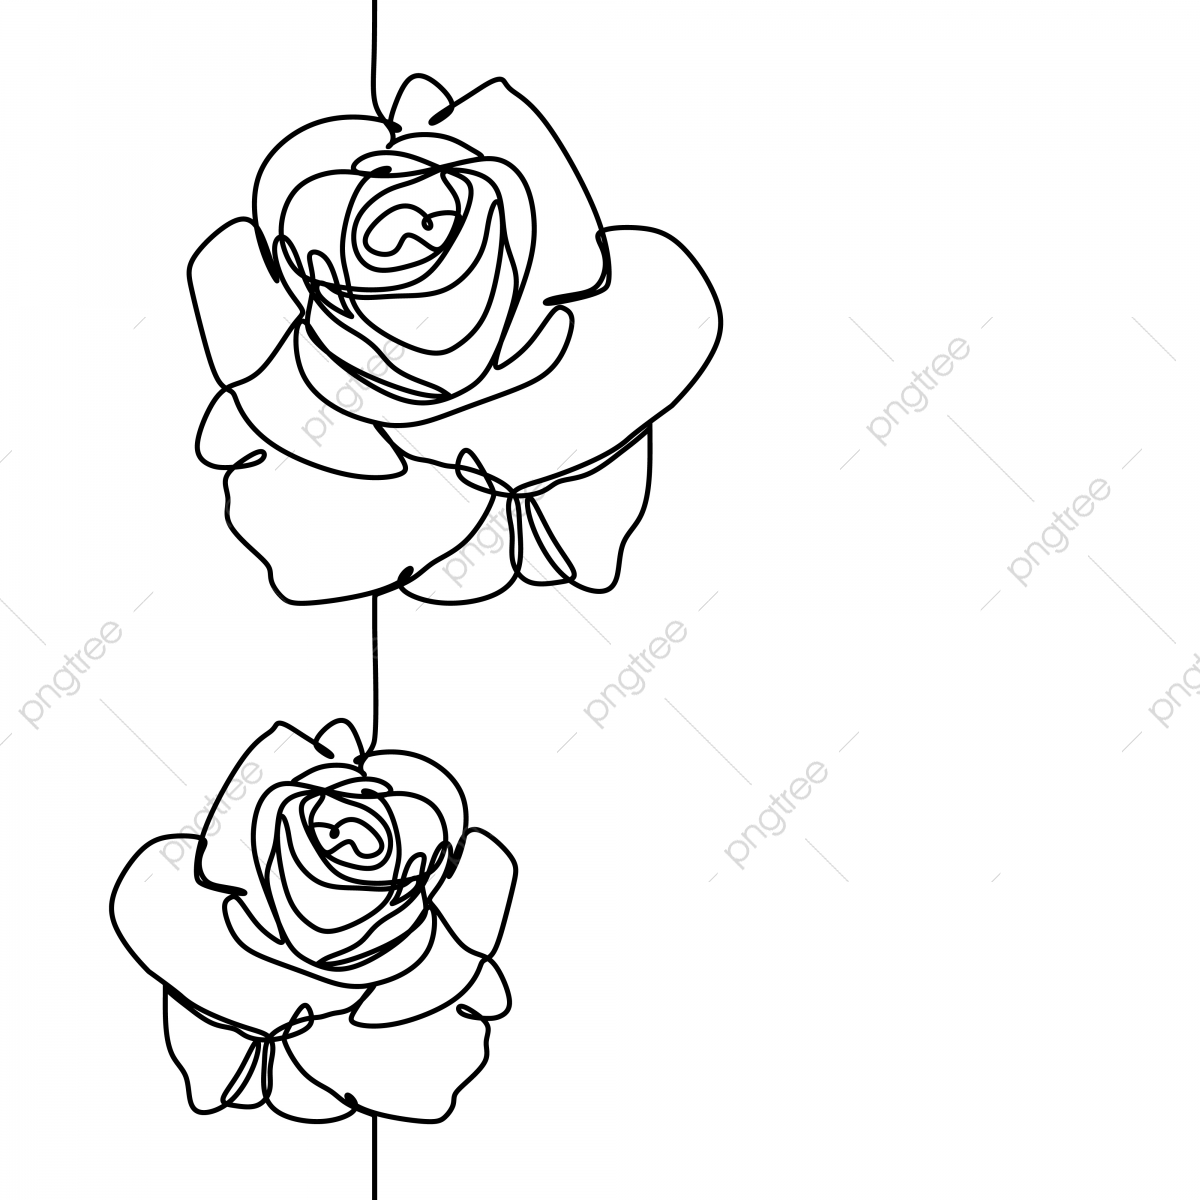 One Line Drawing Of Rose Flower Minimalist Design Isolated On White Background Vector Illustration For Poster Roses Clipart Banner And Wallpaper Template Simple Elegant Continuous Lineart Style Png And Vector With Transparent